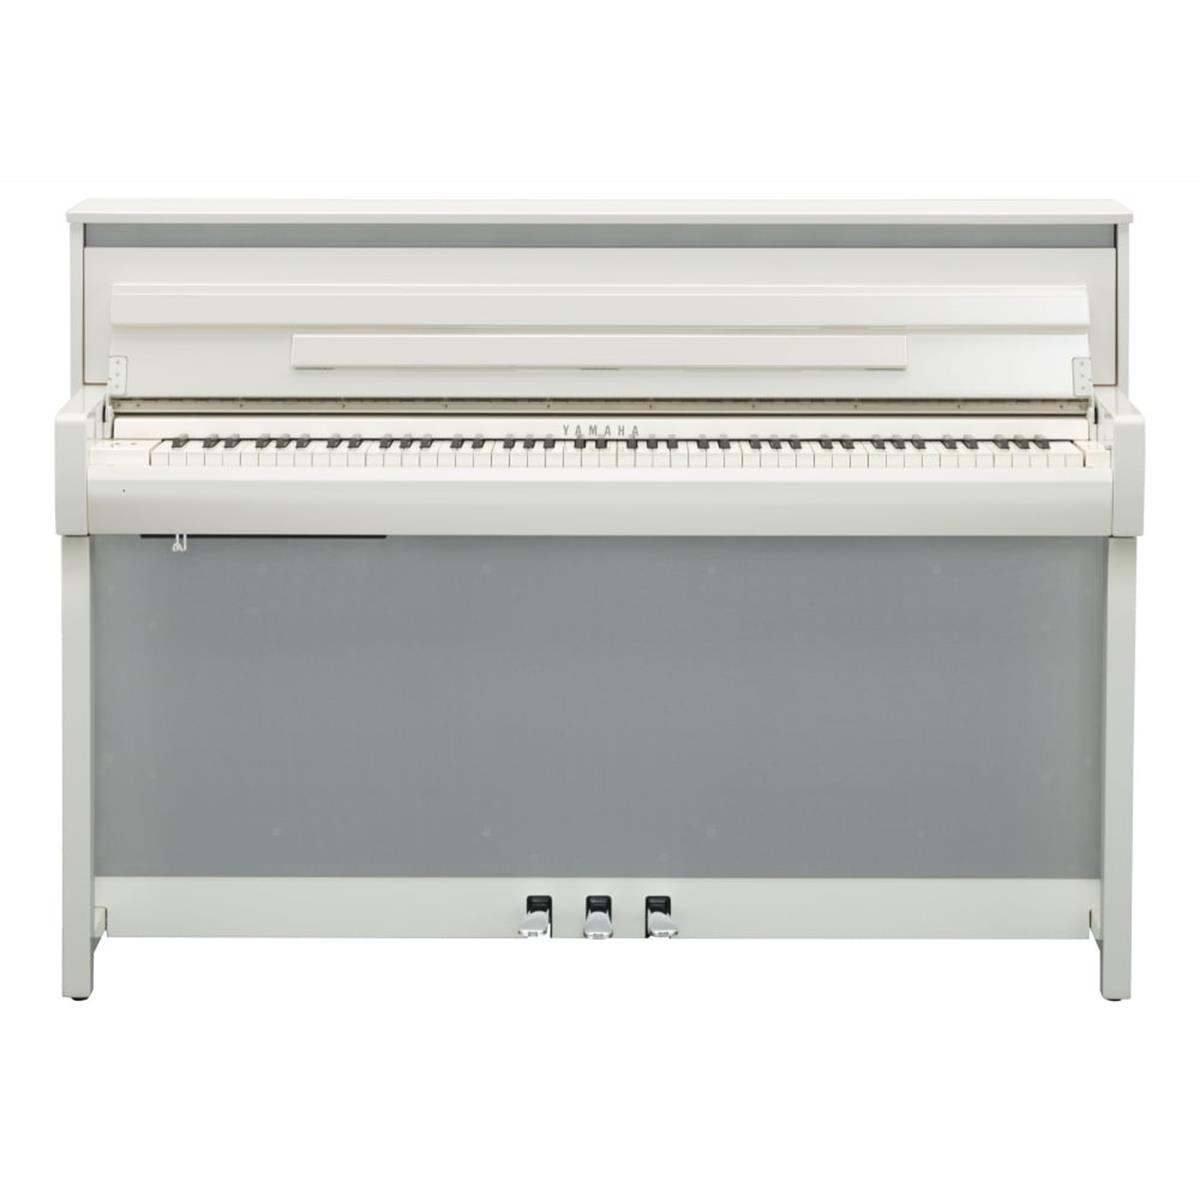 YAMAHA CLP685PWH - CLAVINOVA - DIGITAL PIANO POLISHED WHITE